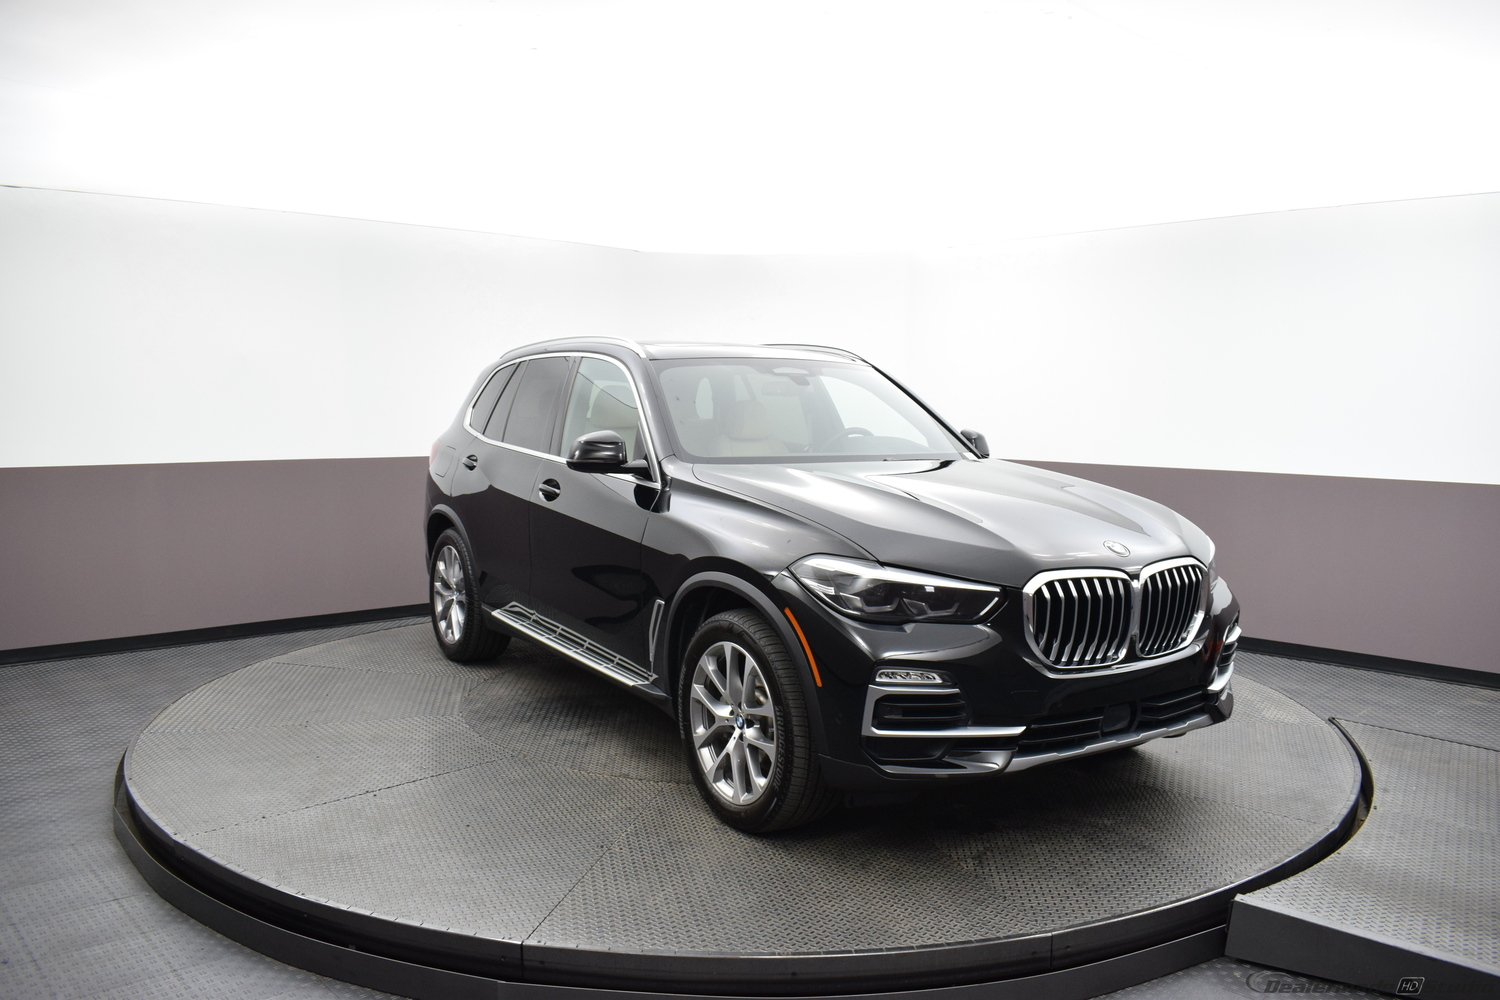 Retired Loaner 2020 Bmw X5 Sdrive40i Suv In Arlington Lle30537r Bmw Of Arlington